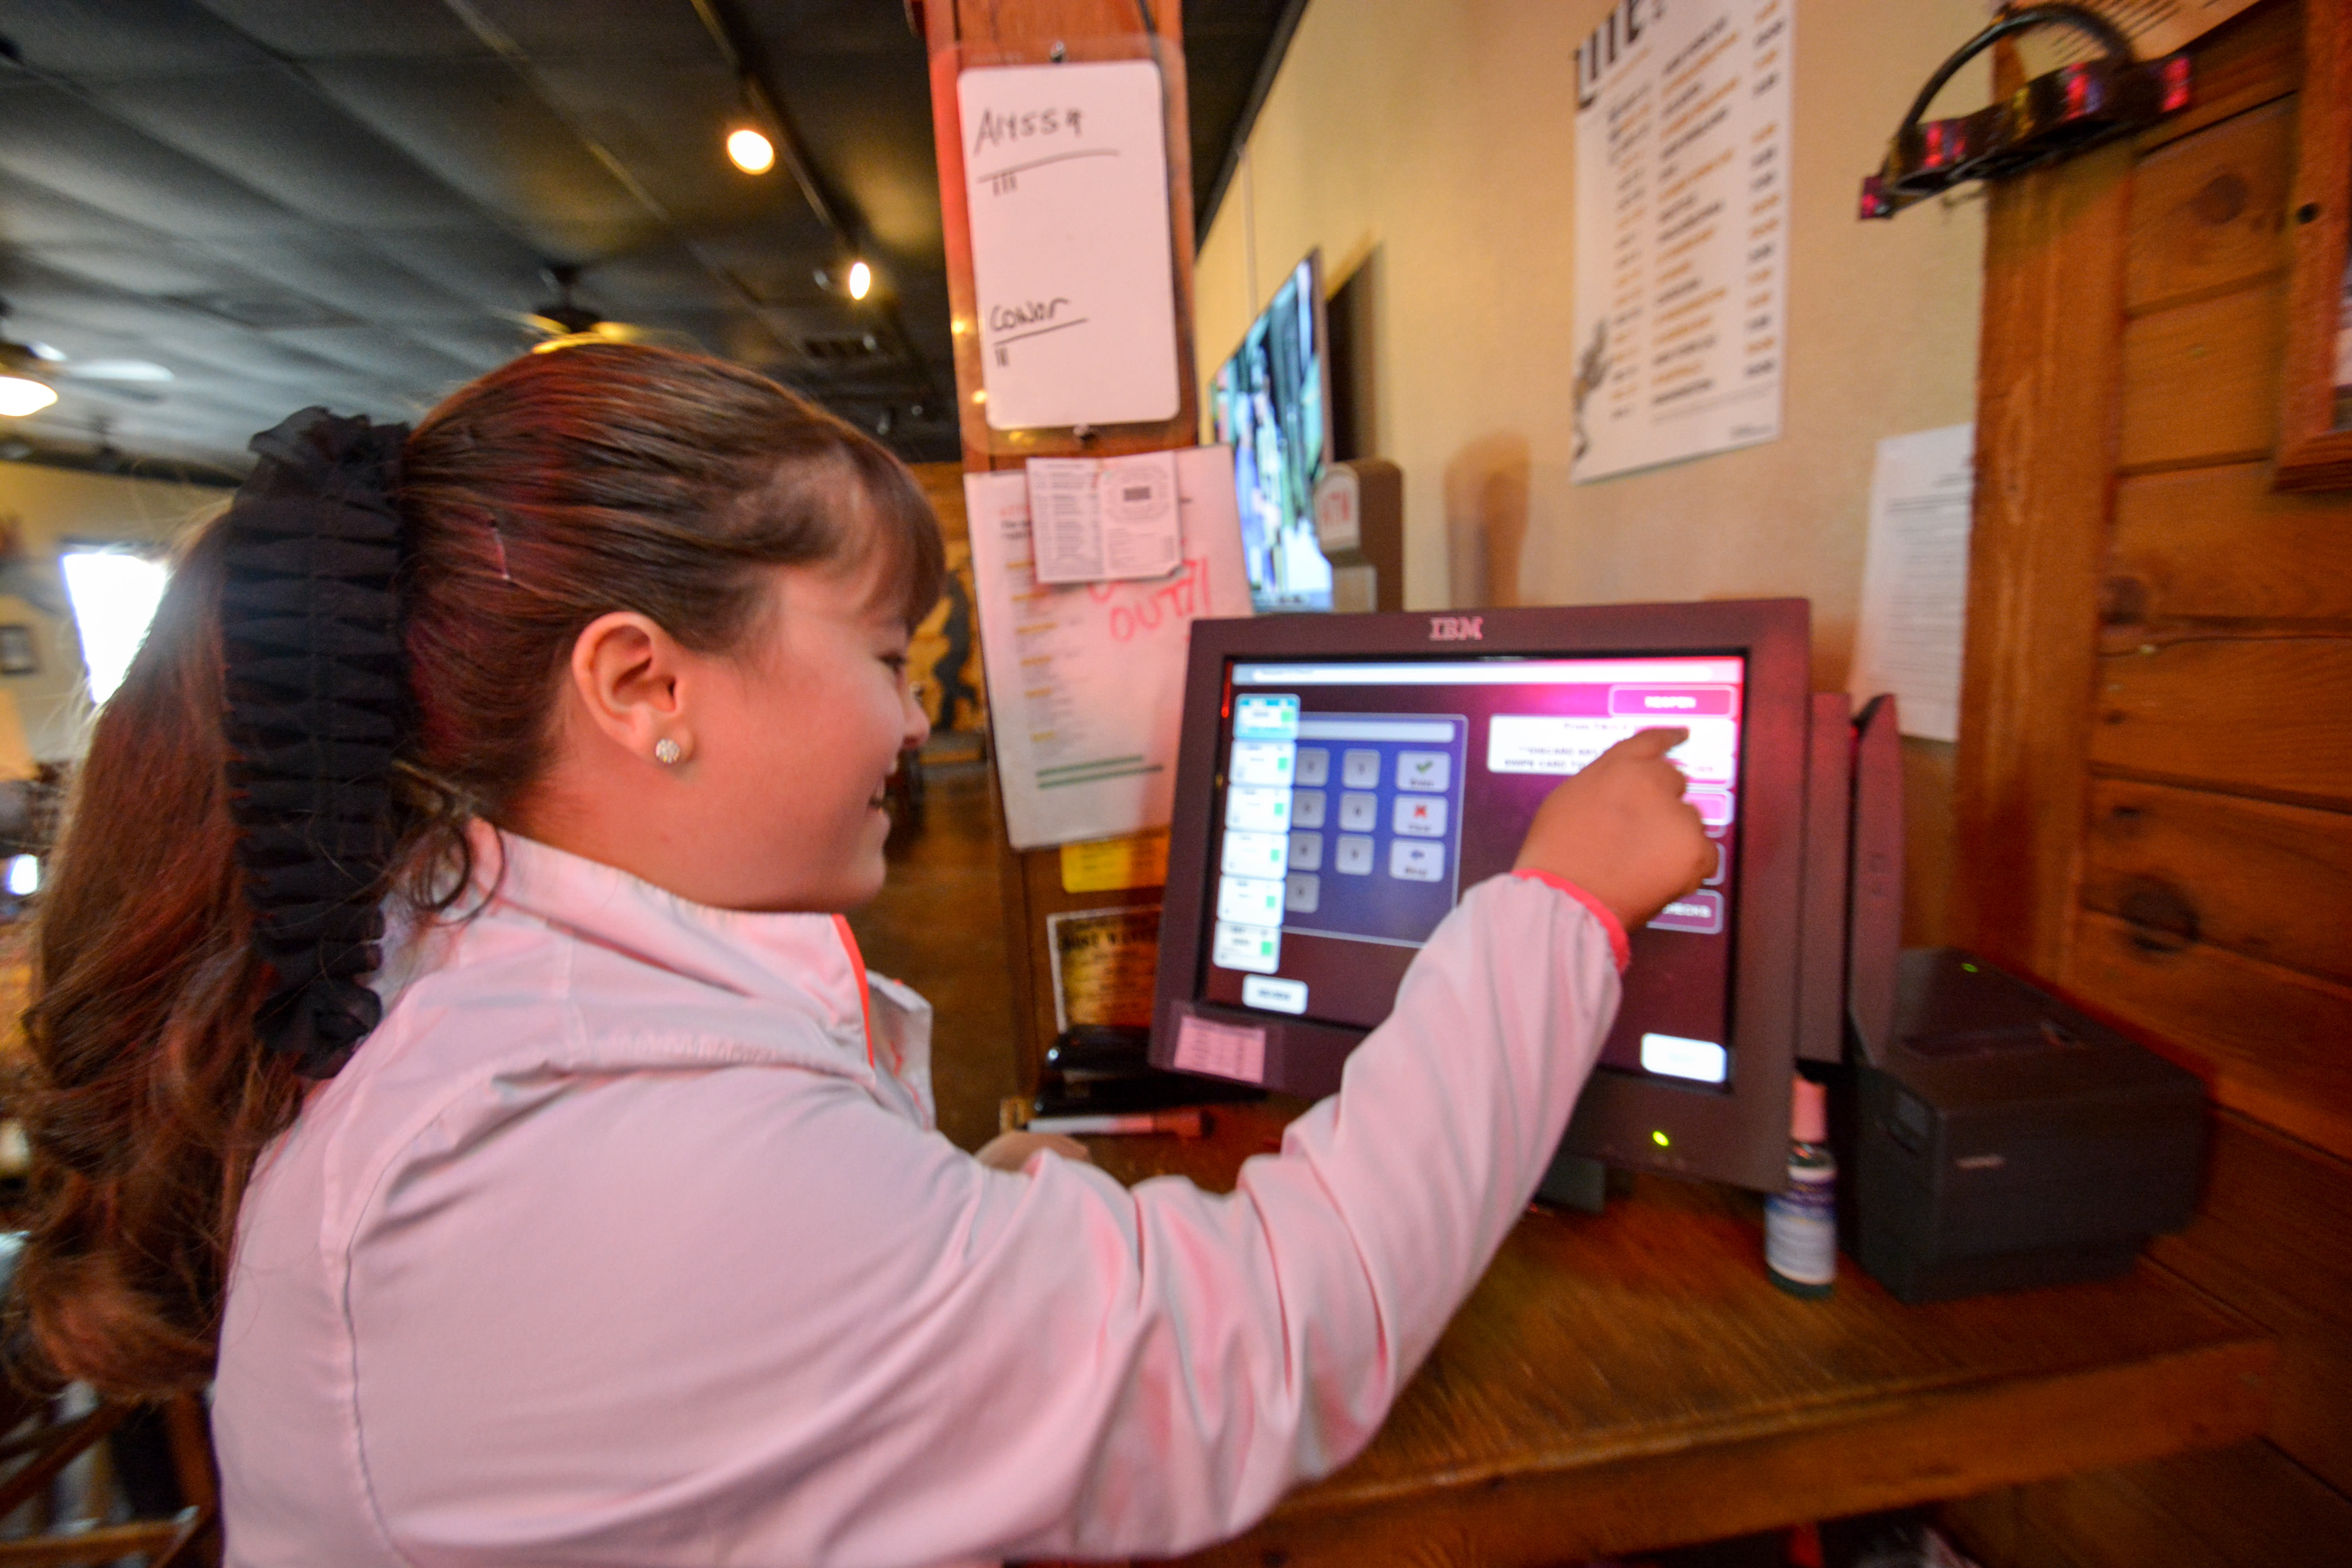 Alyssa adding orders into the point of sale system